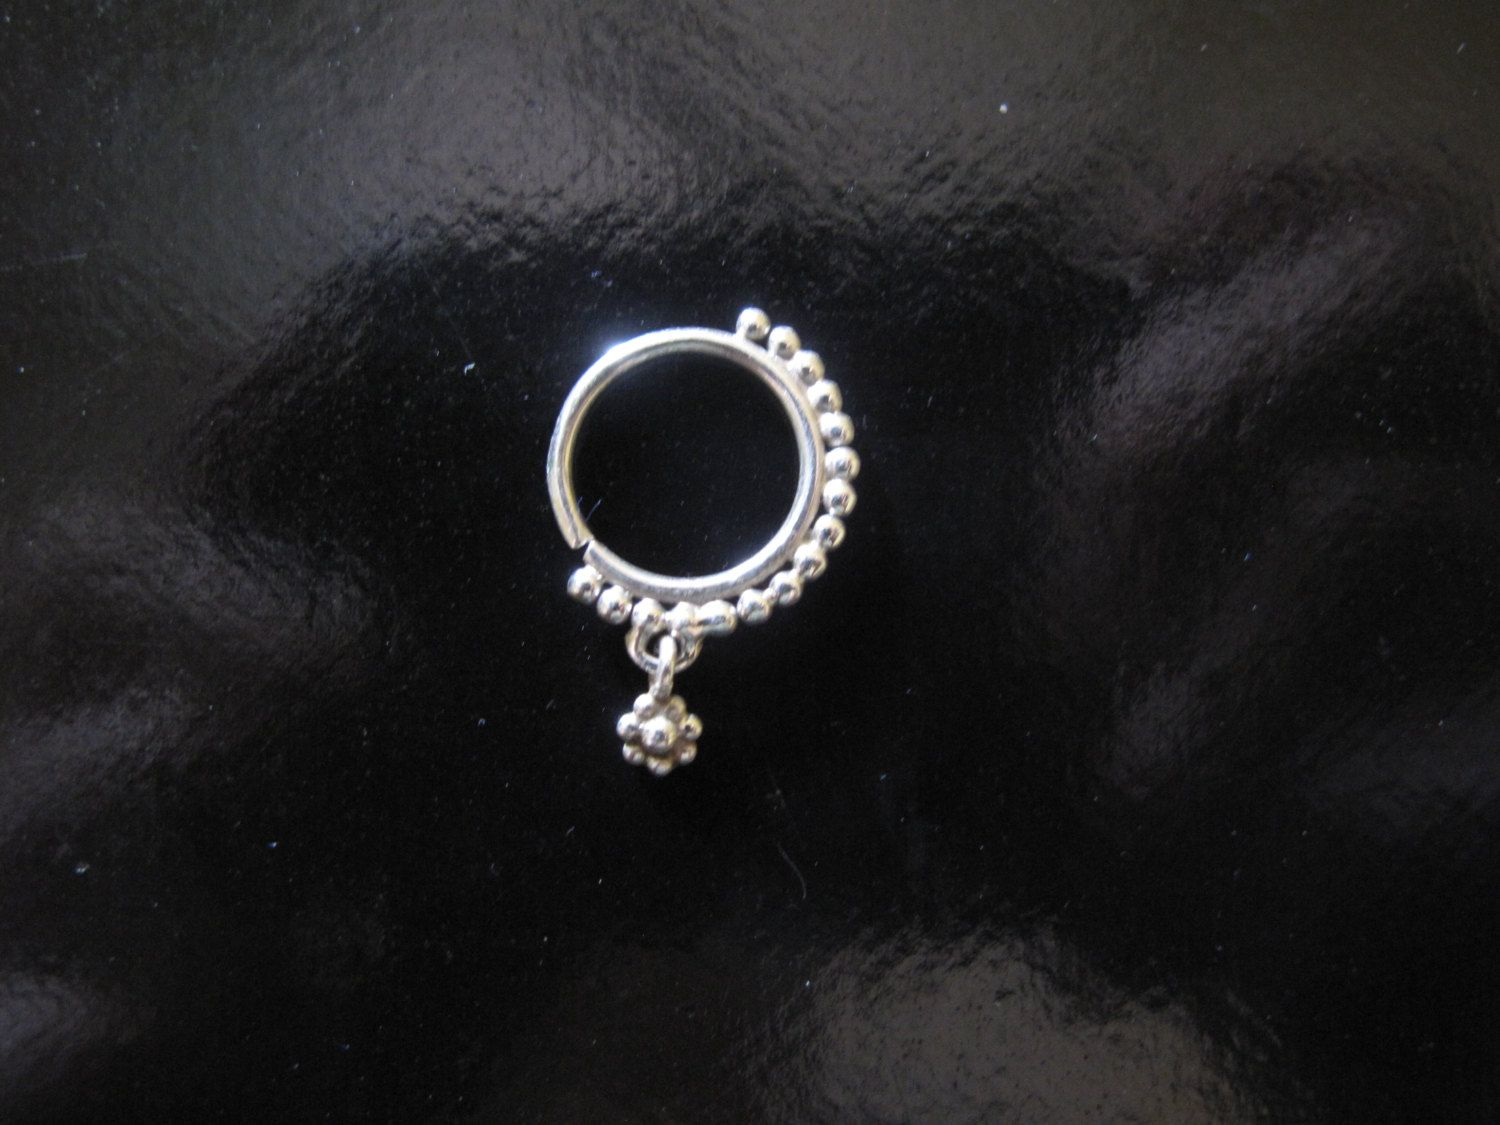 Silver Nose Ring with Flower pendant or Silver Septum by RabariRajkumari on Etsy